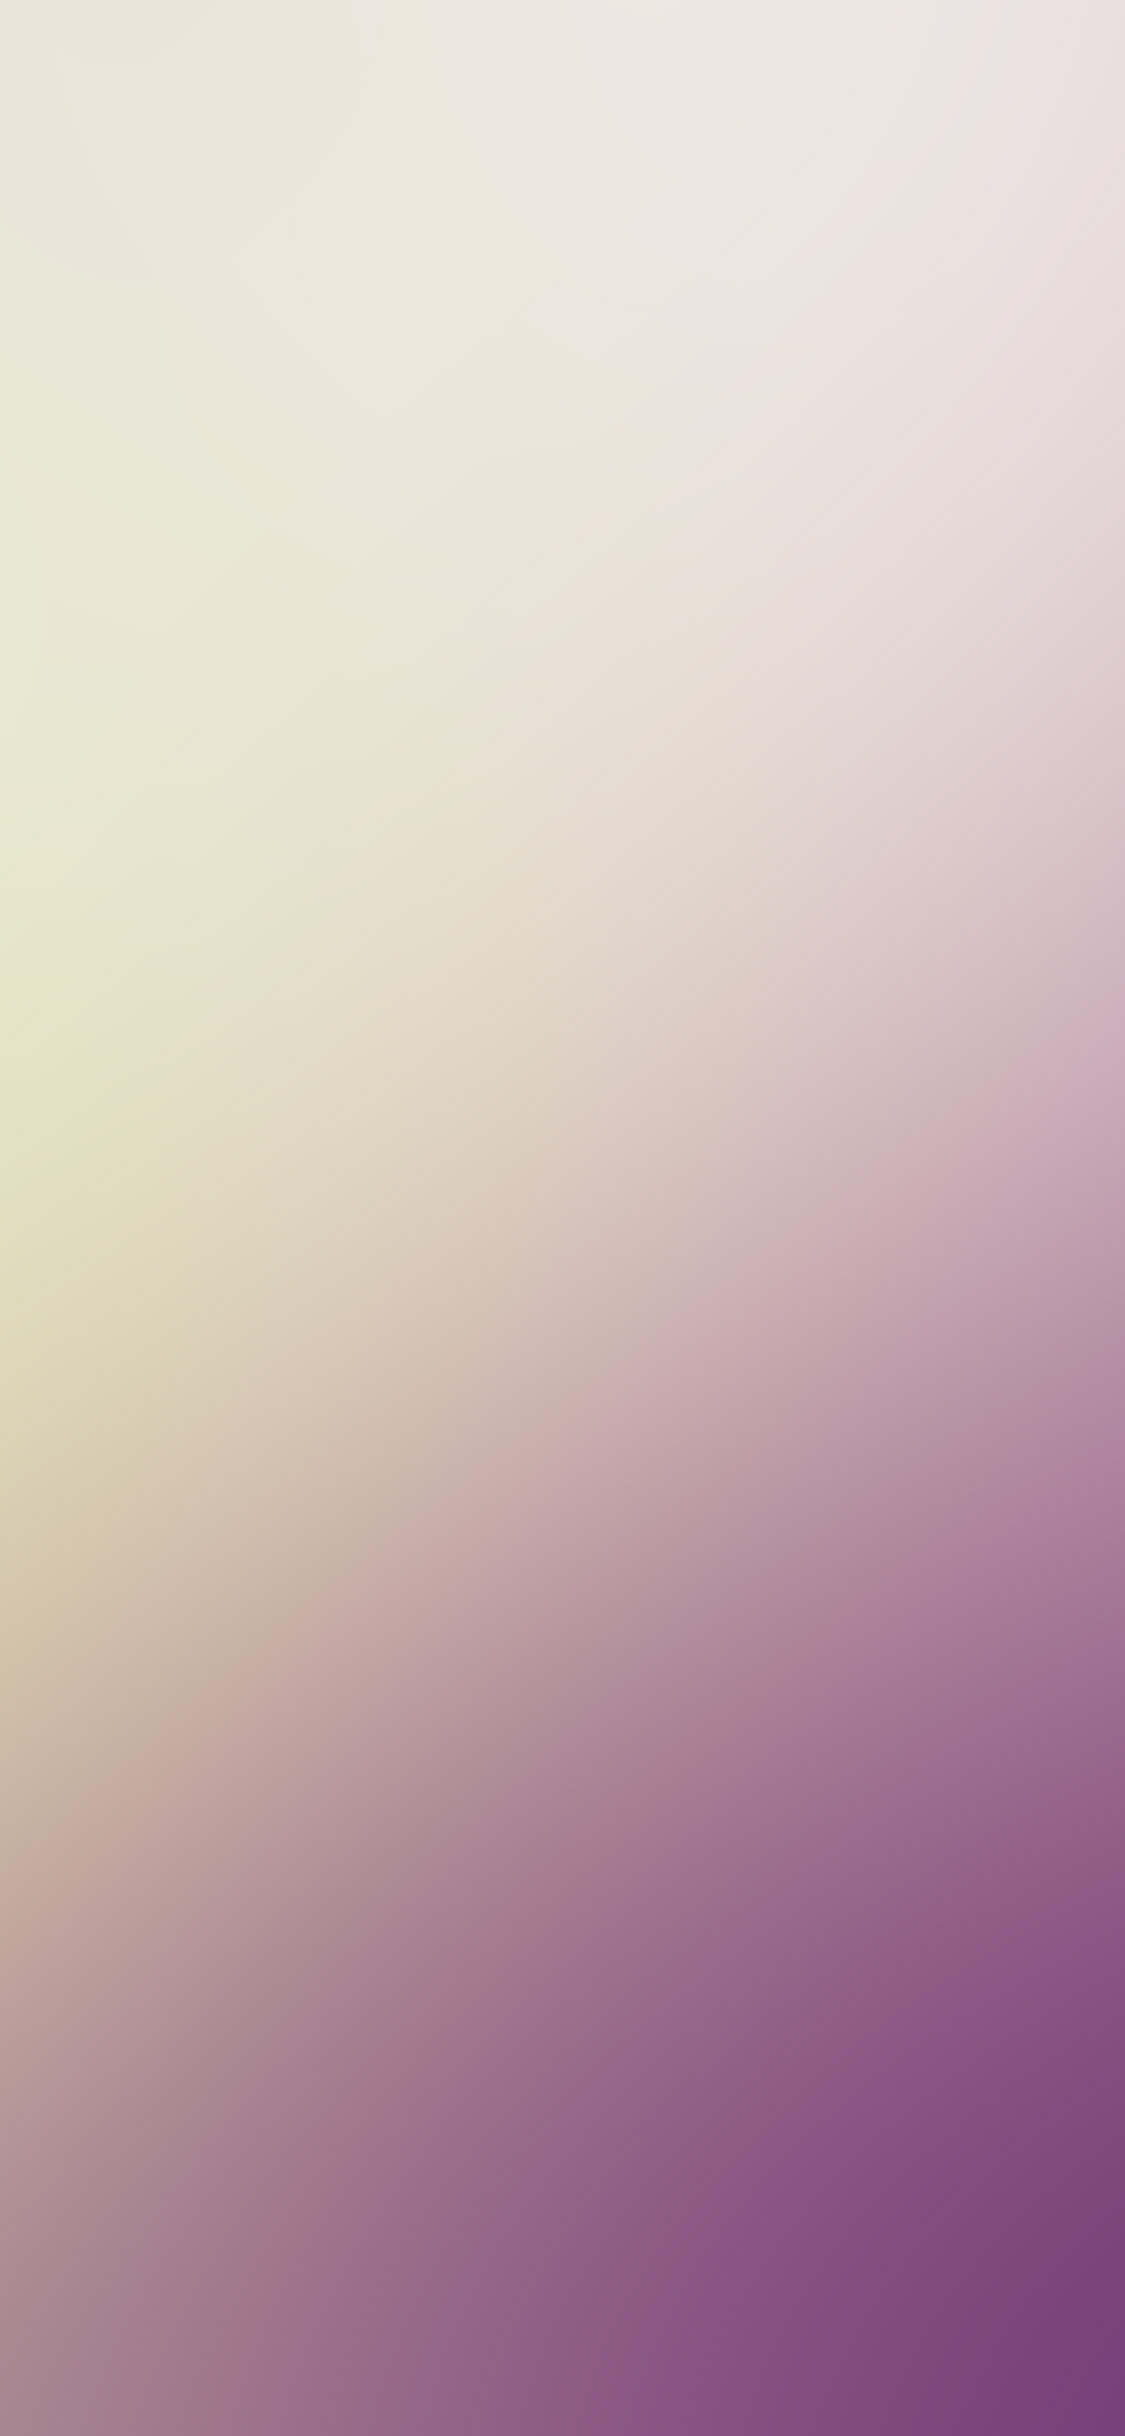 iPhonexpapers.com-Apple-iPhone-wallpaper-sm85-pink-soft-blur-gradation-pastel